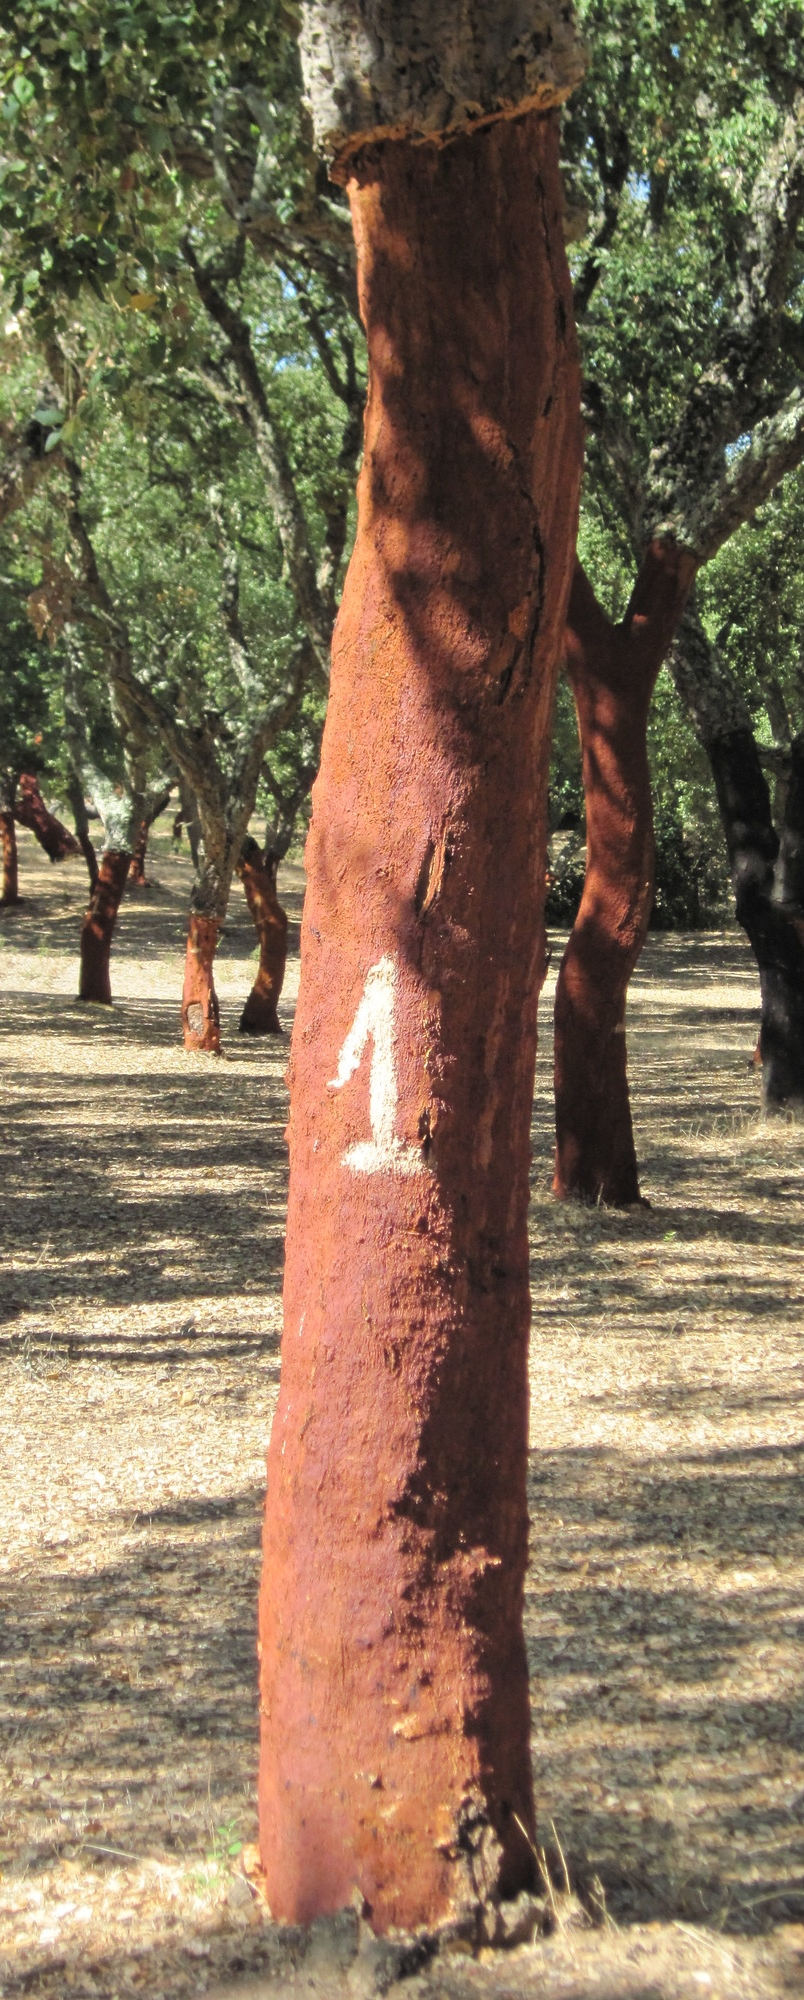 Cork Oak in Portugal